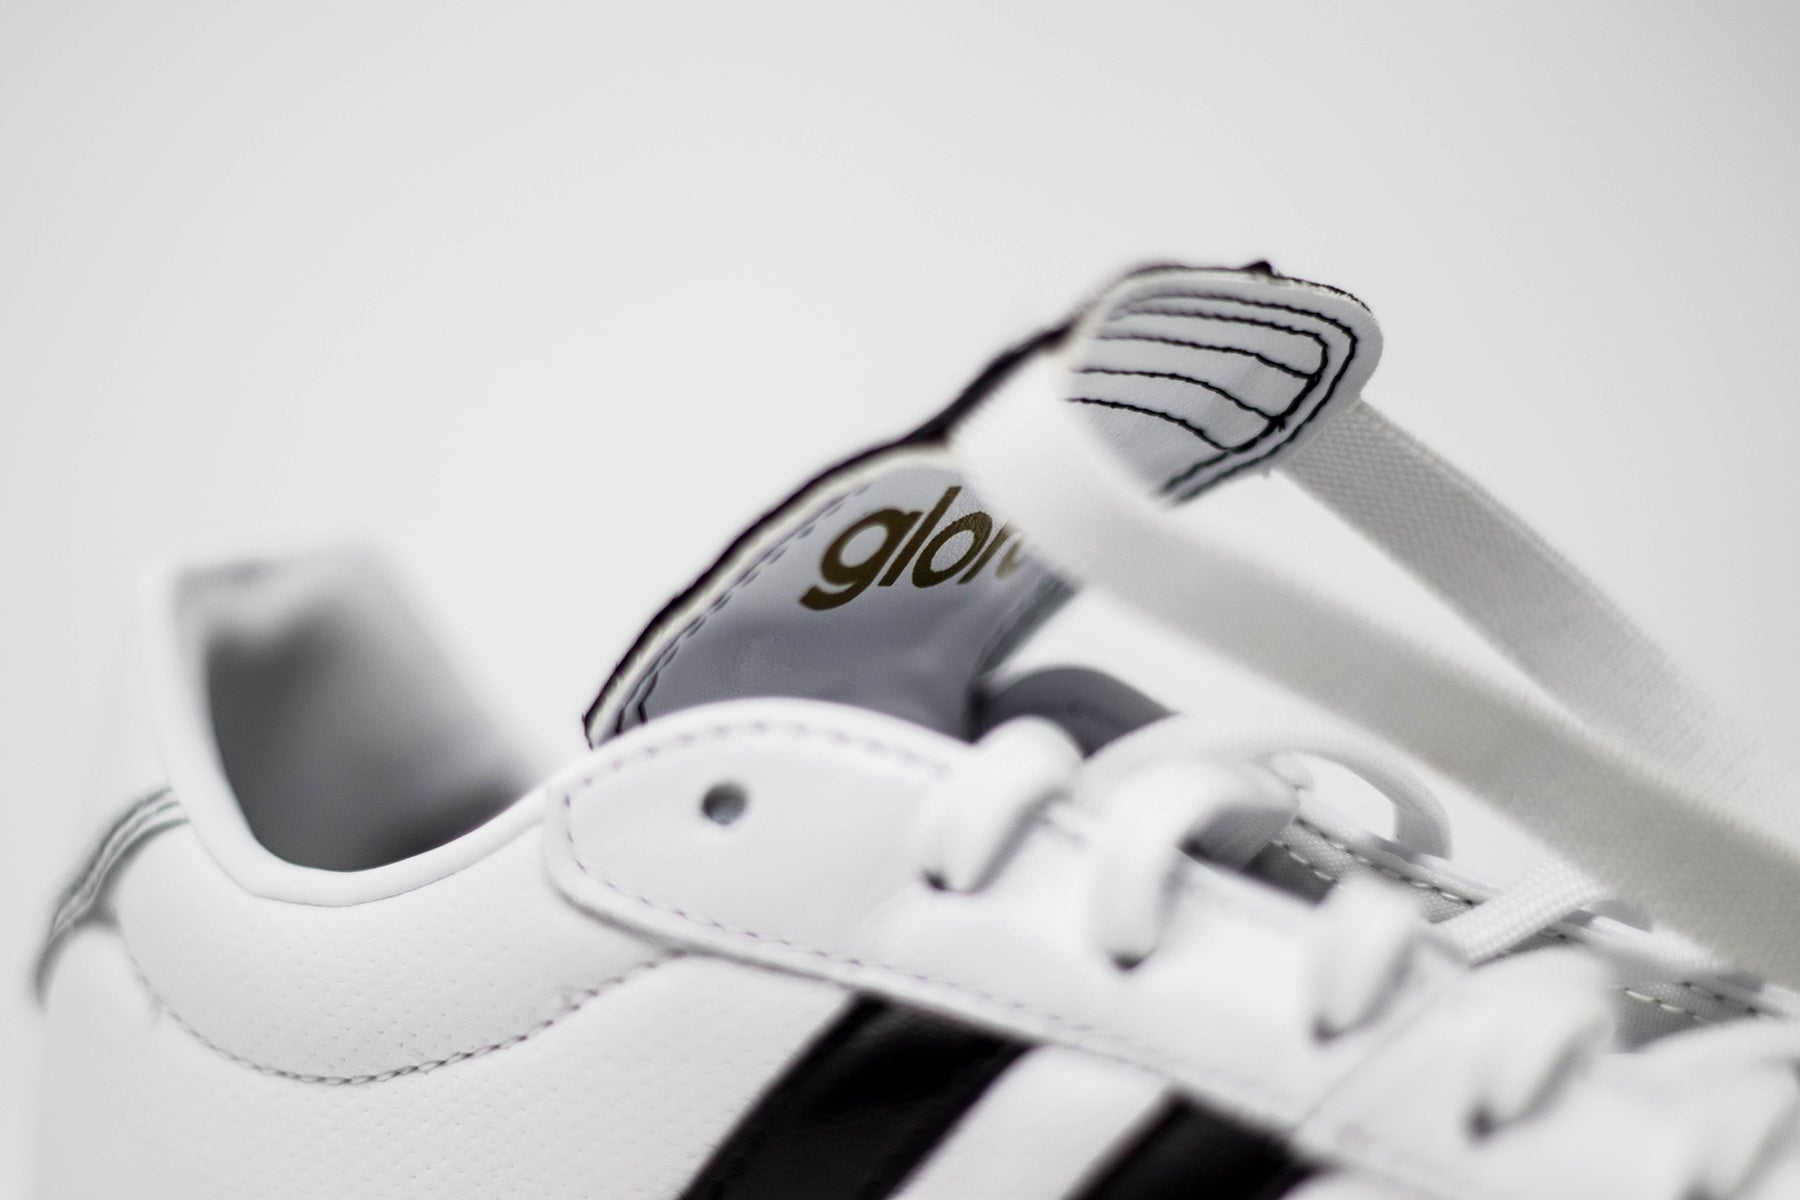 adidas gloro soccer cleat, white, 12 studs